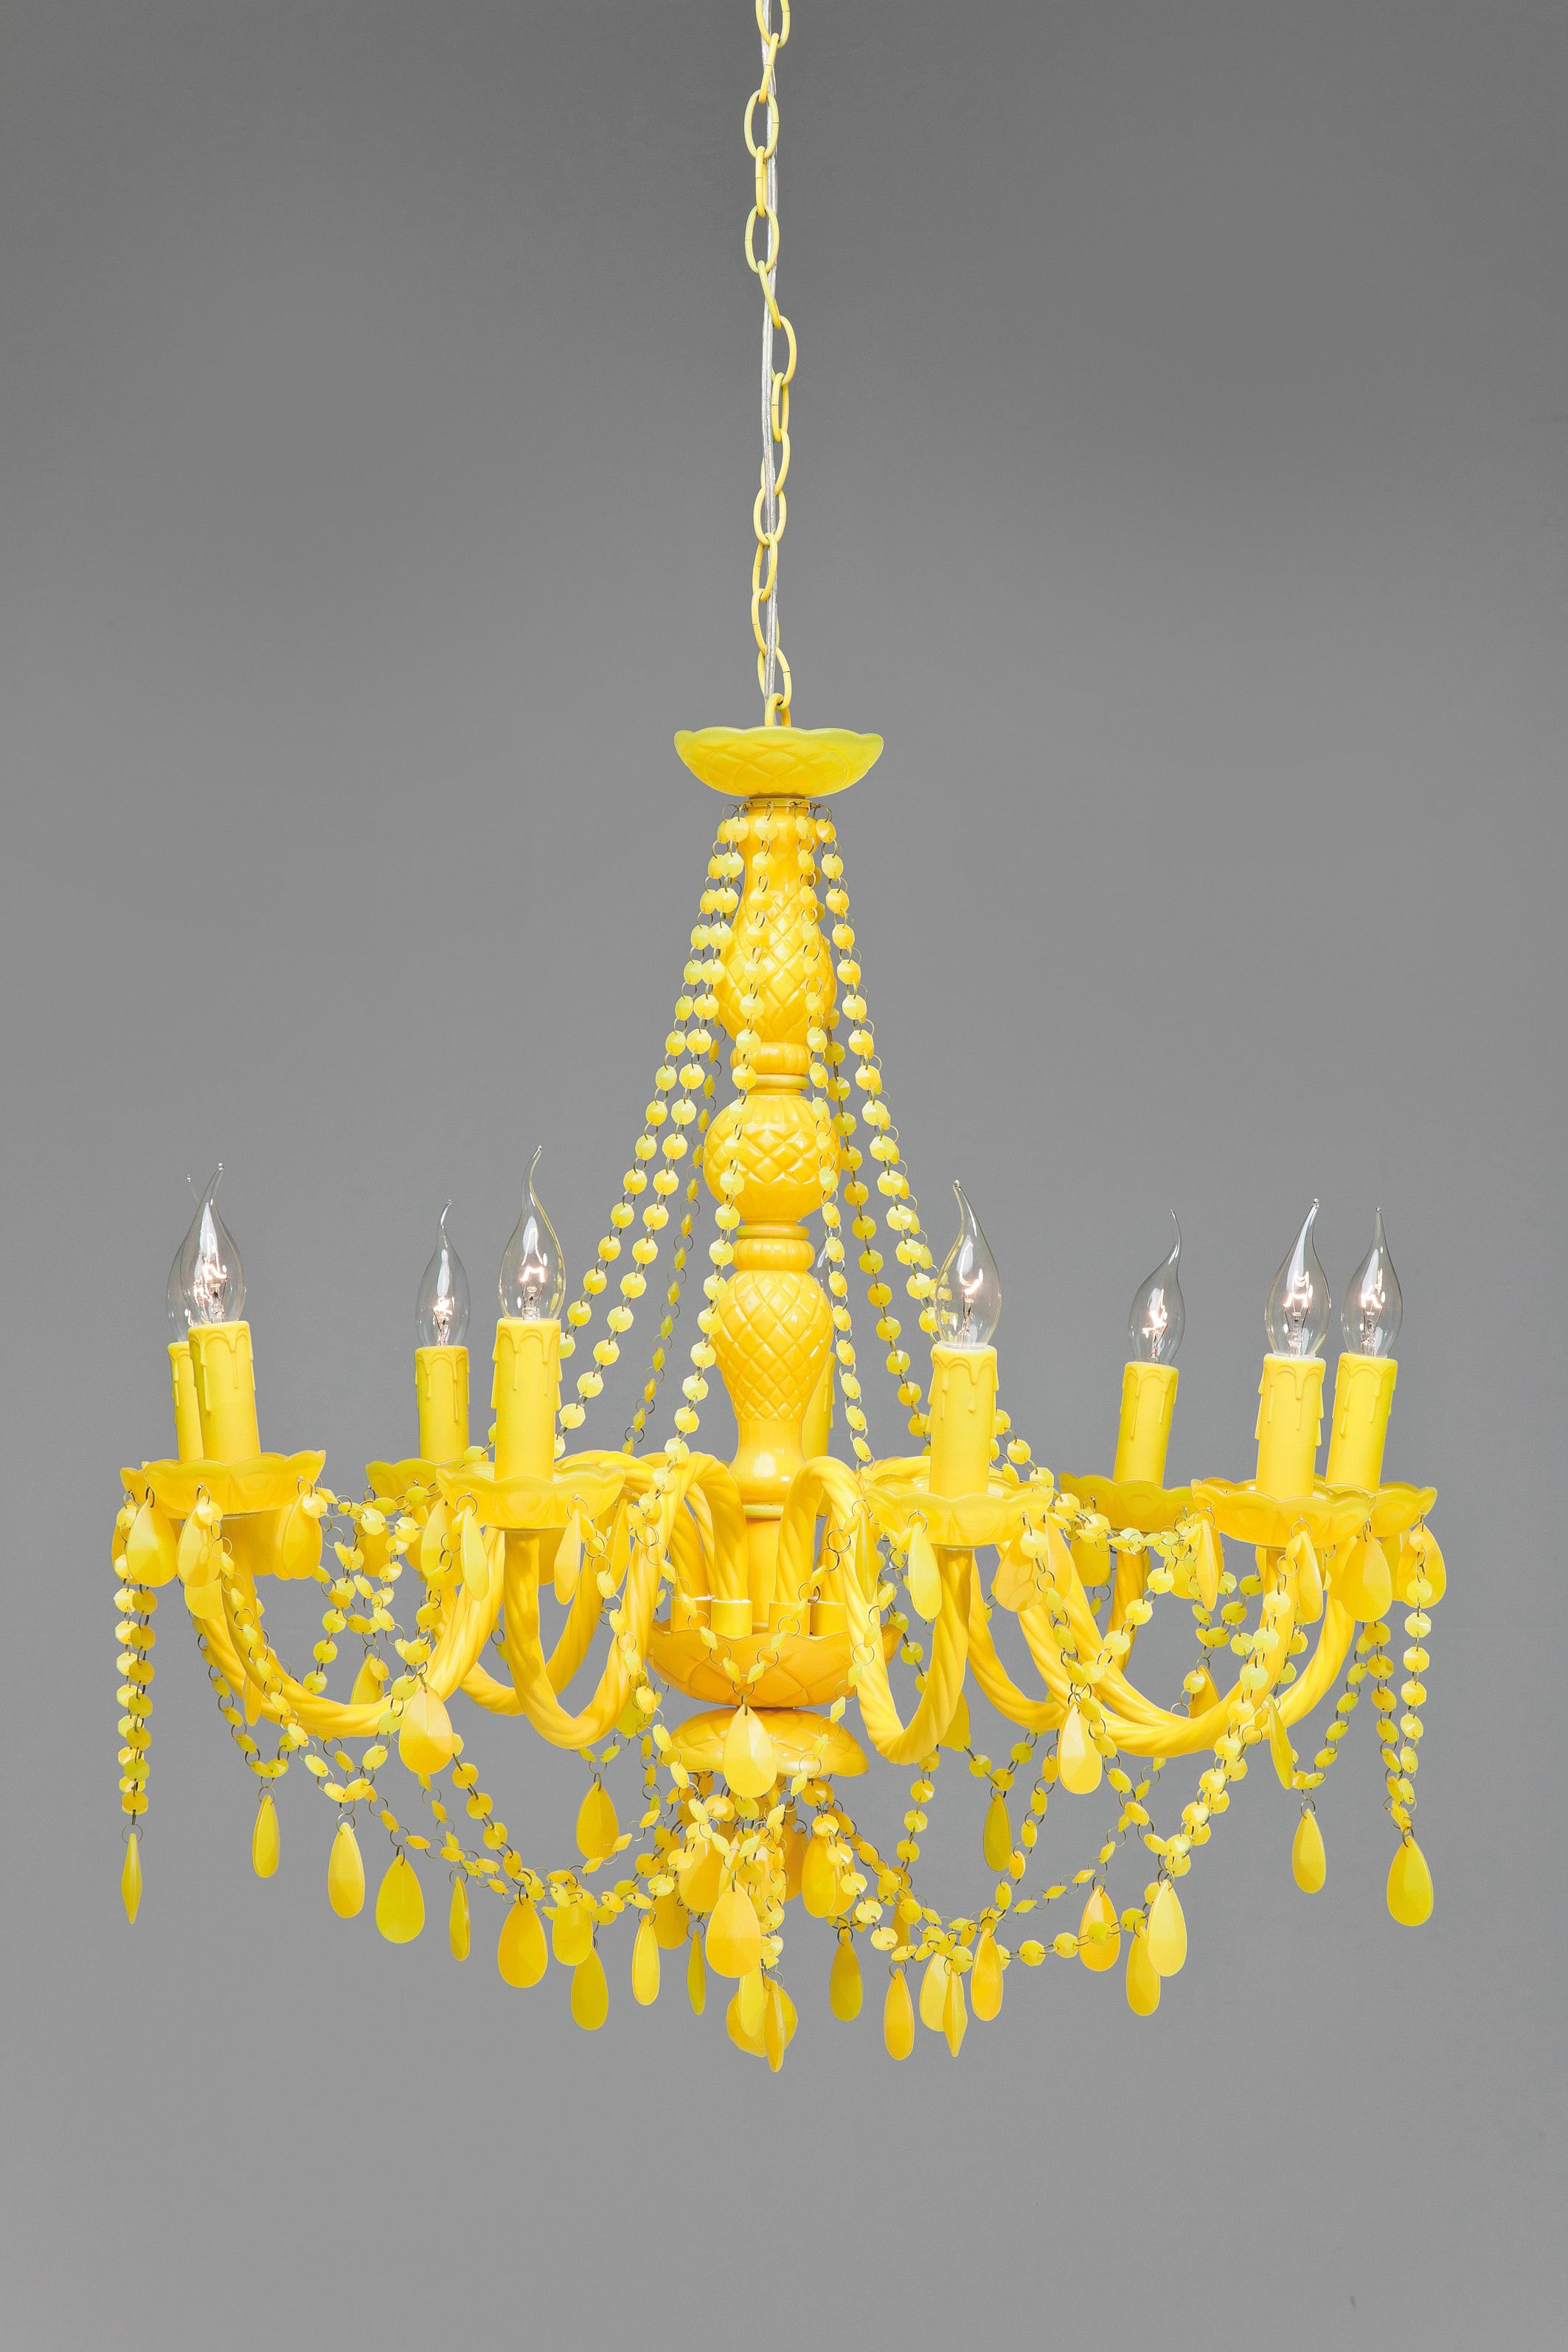 Yellow baroque chandelier collection of chandeliers pinterest yellow baroque chandelier aloadofball Image collections